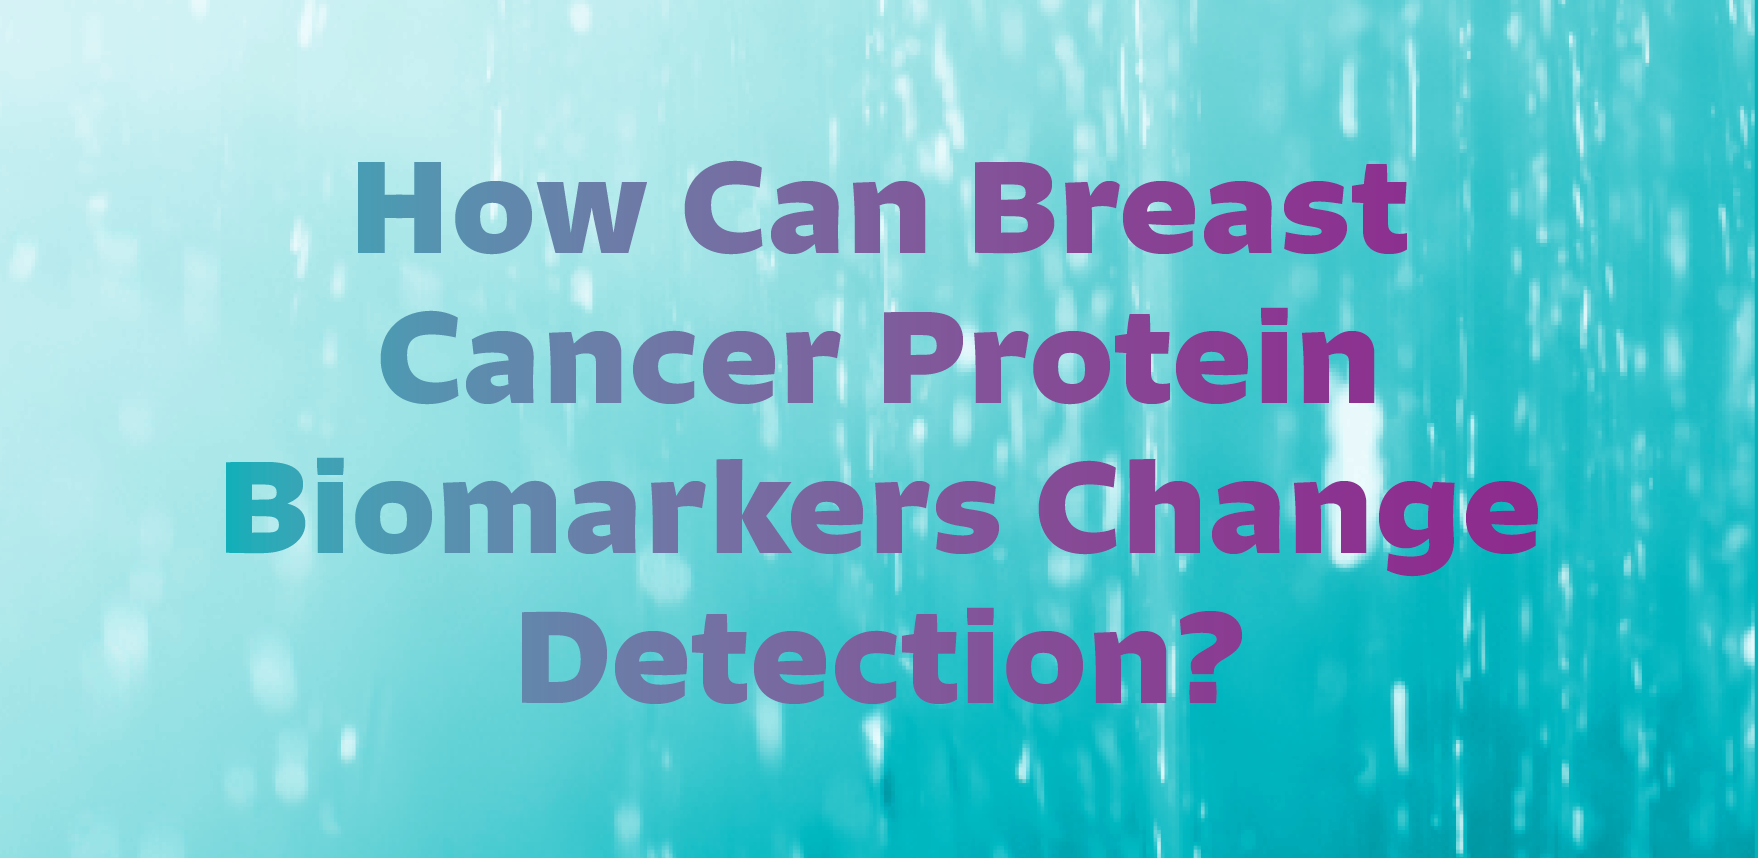 Breast-Cancer-Protein-Biomarkers.png